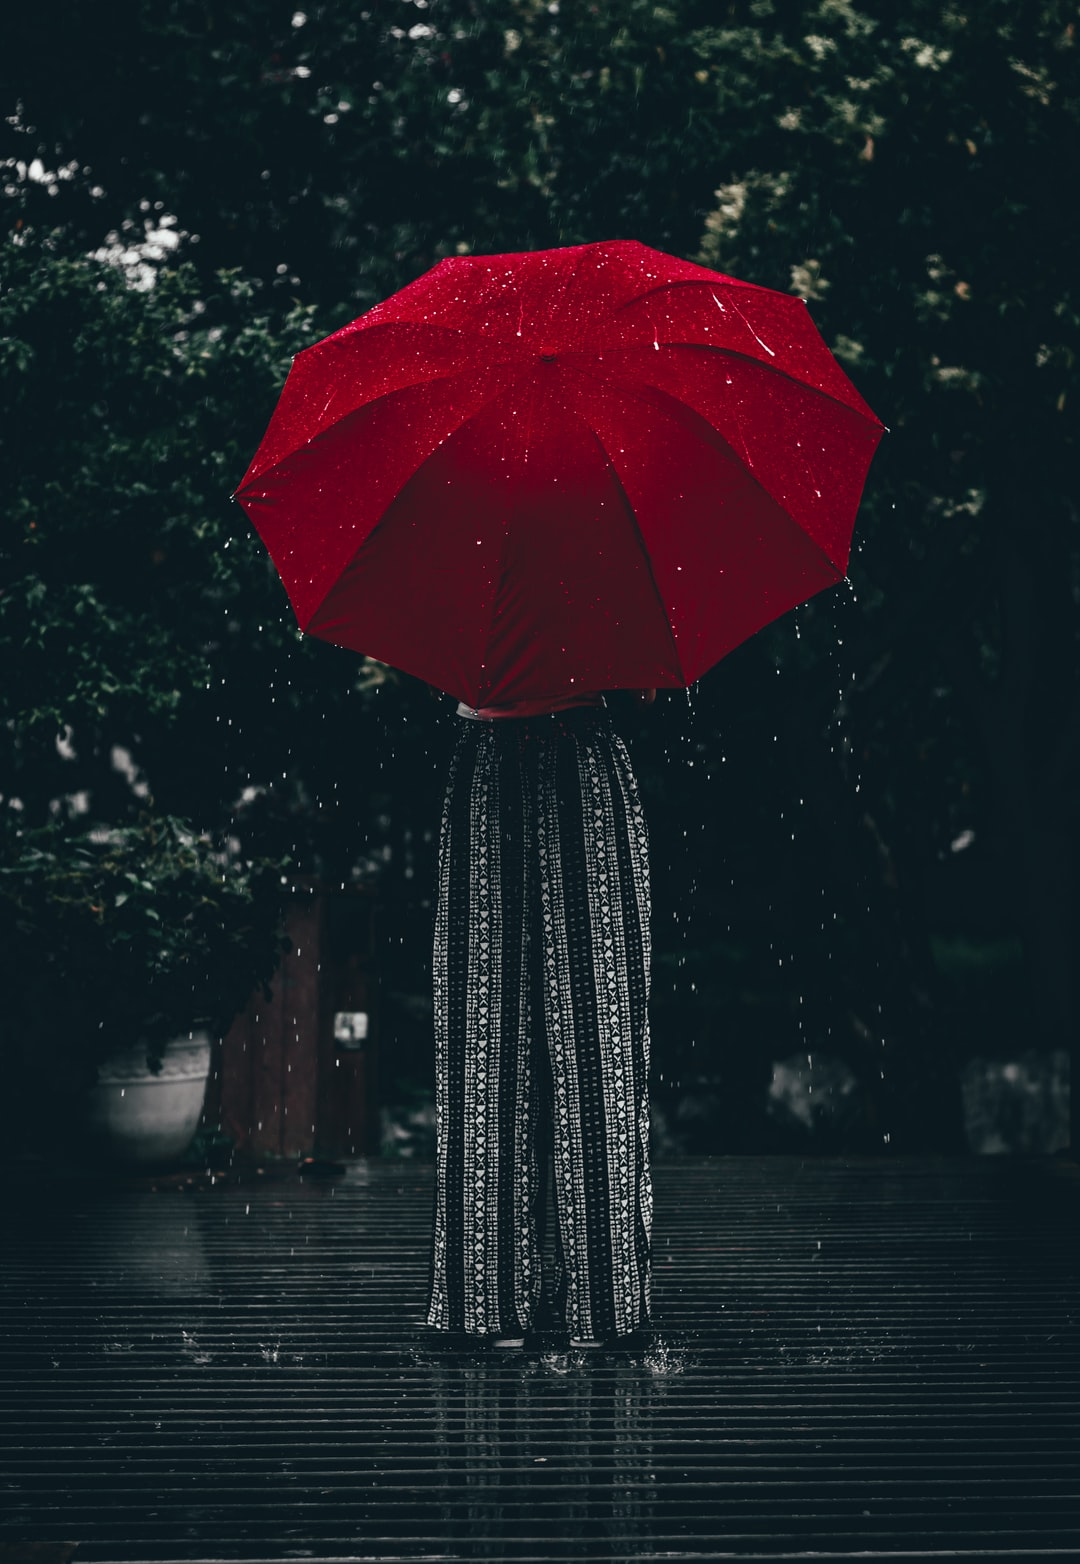 Photograph produced on a rainy day, where the concept was to get the detailing of all the composition, including the rain.